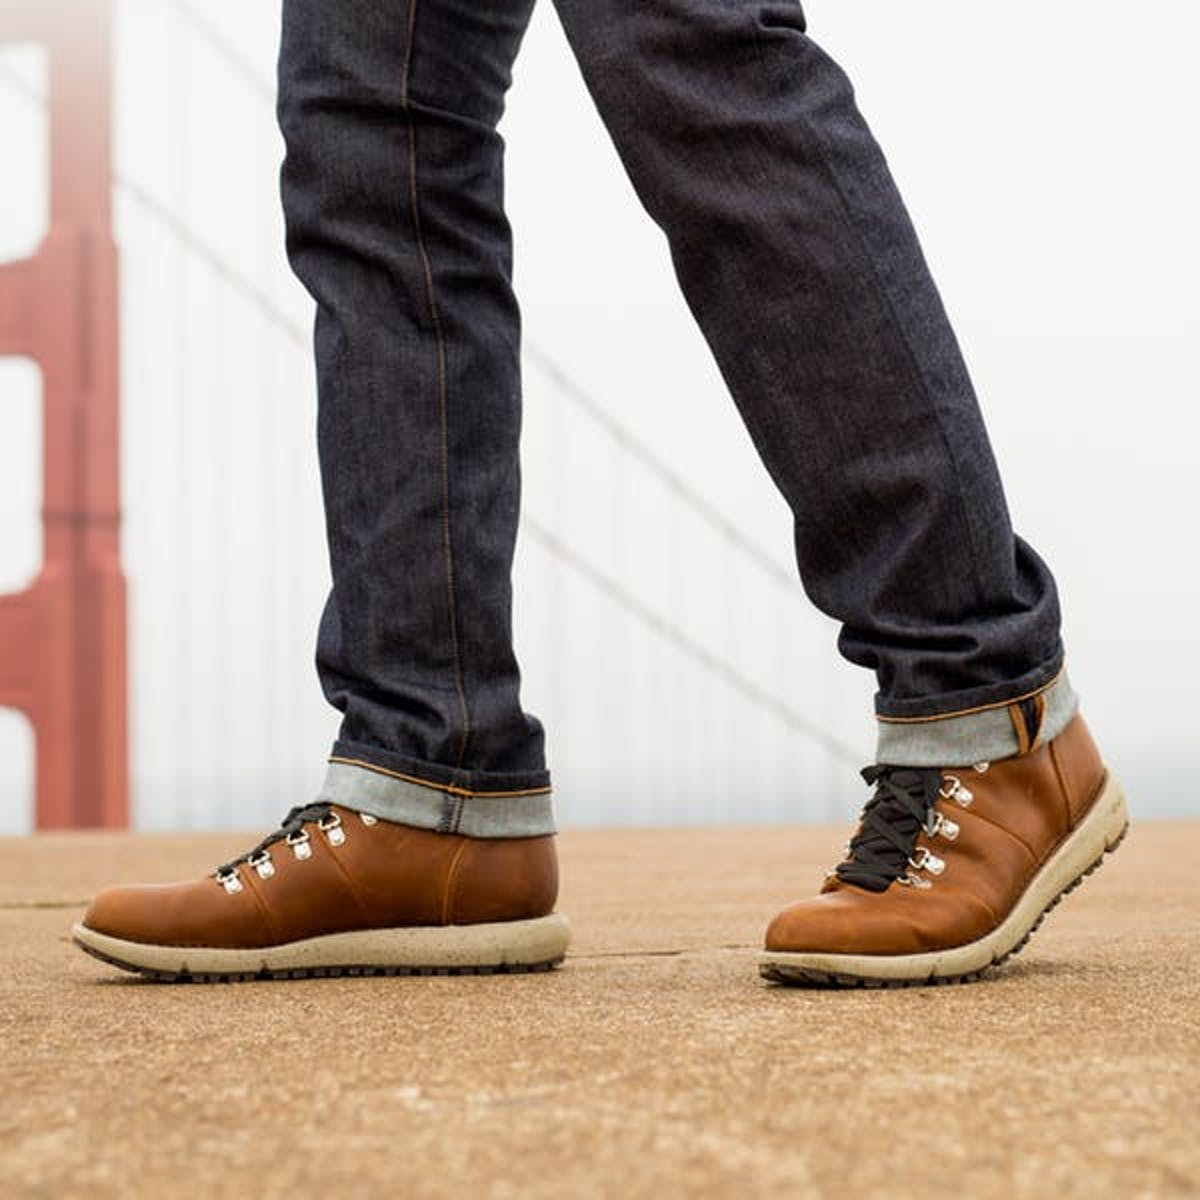 73976a457b7 Waterproof Boots That Won't Make You Look Like a Little Kid | Inverse